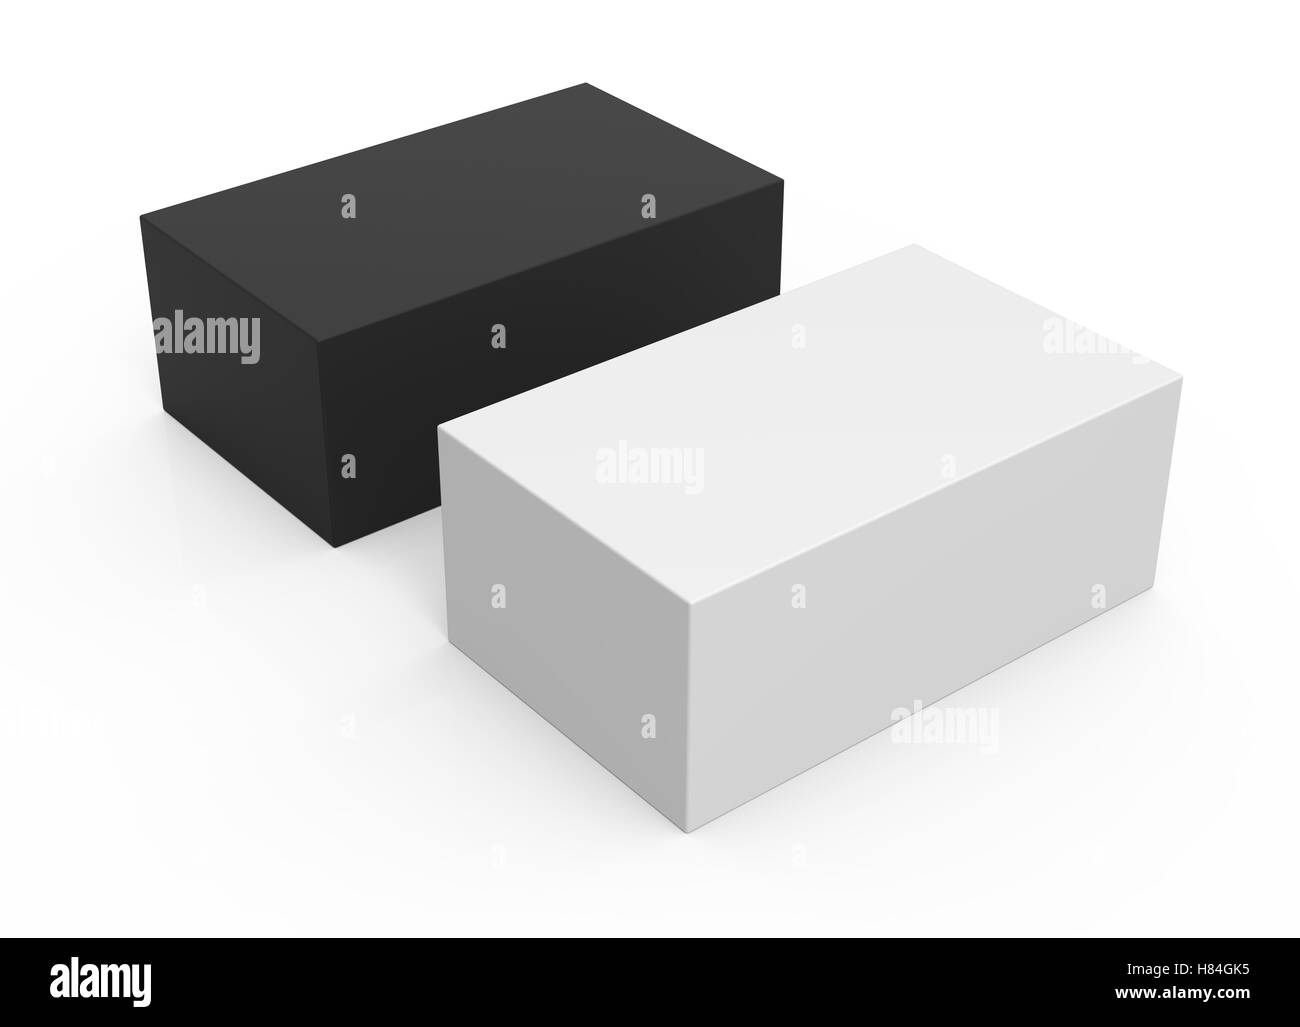 one white box and one black box packaging template 3d rendering